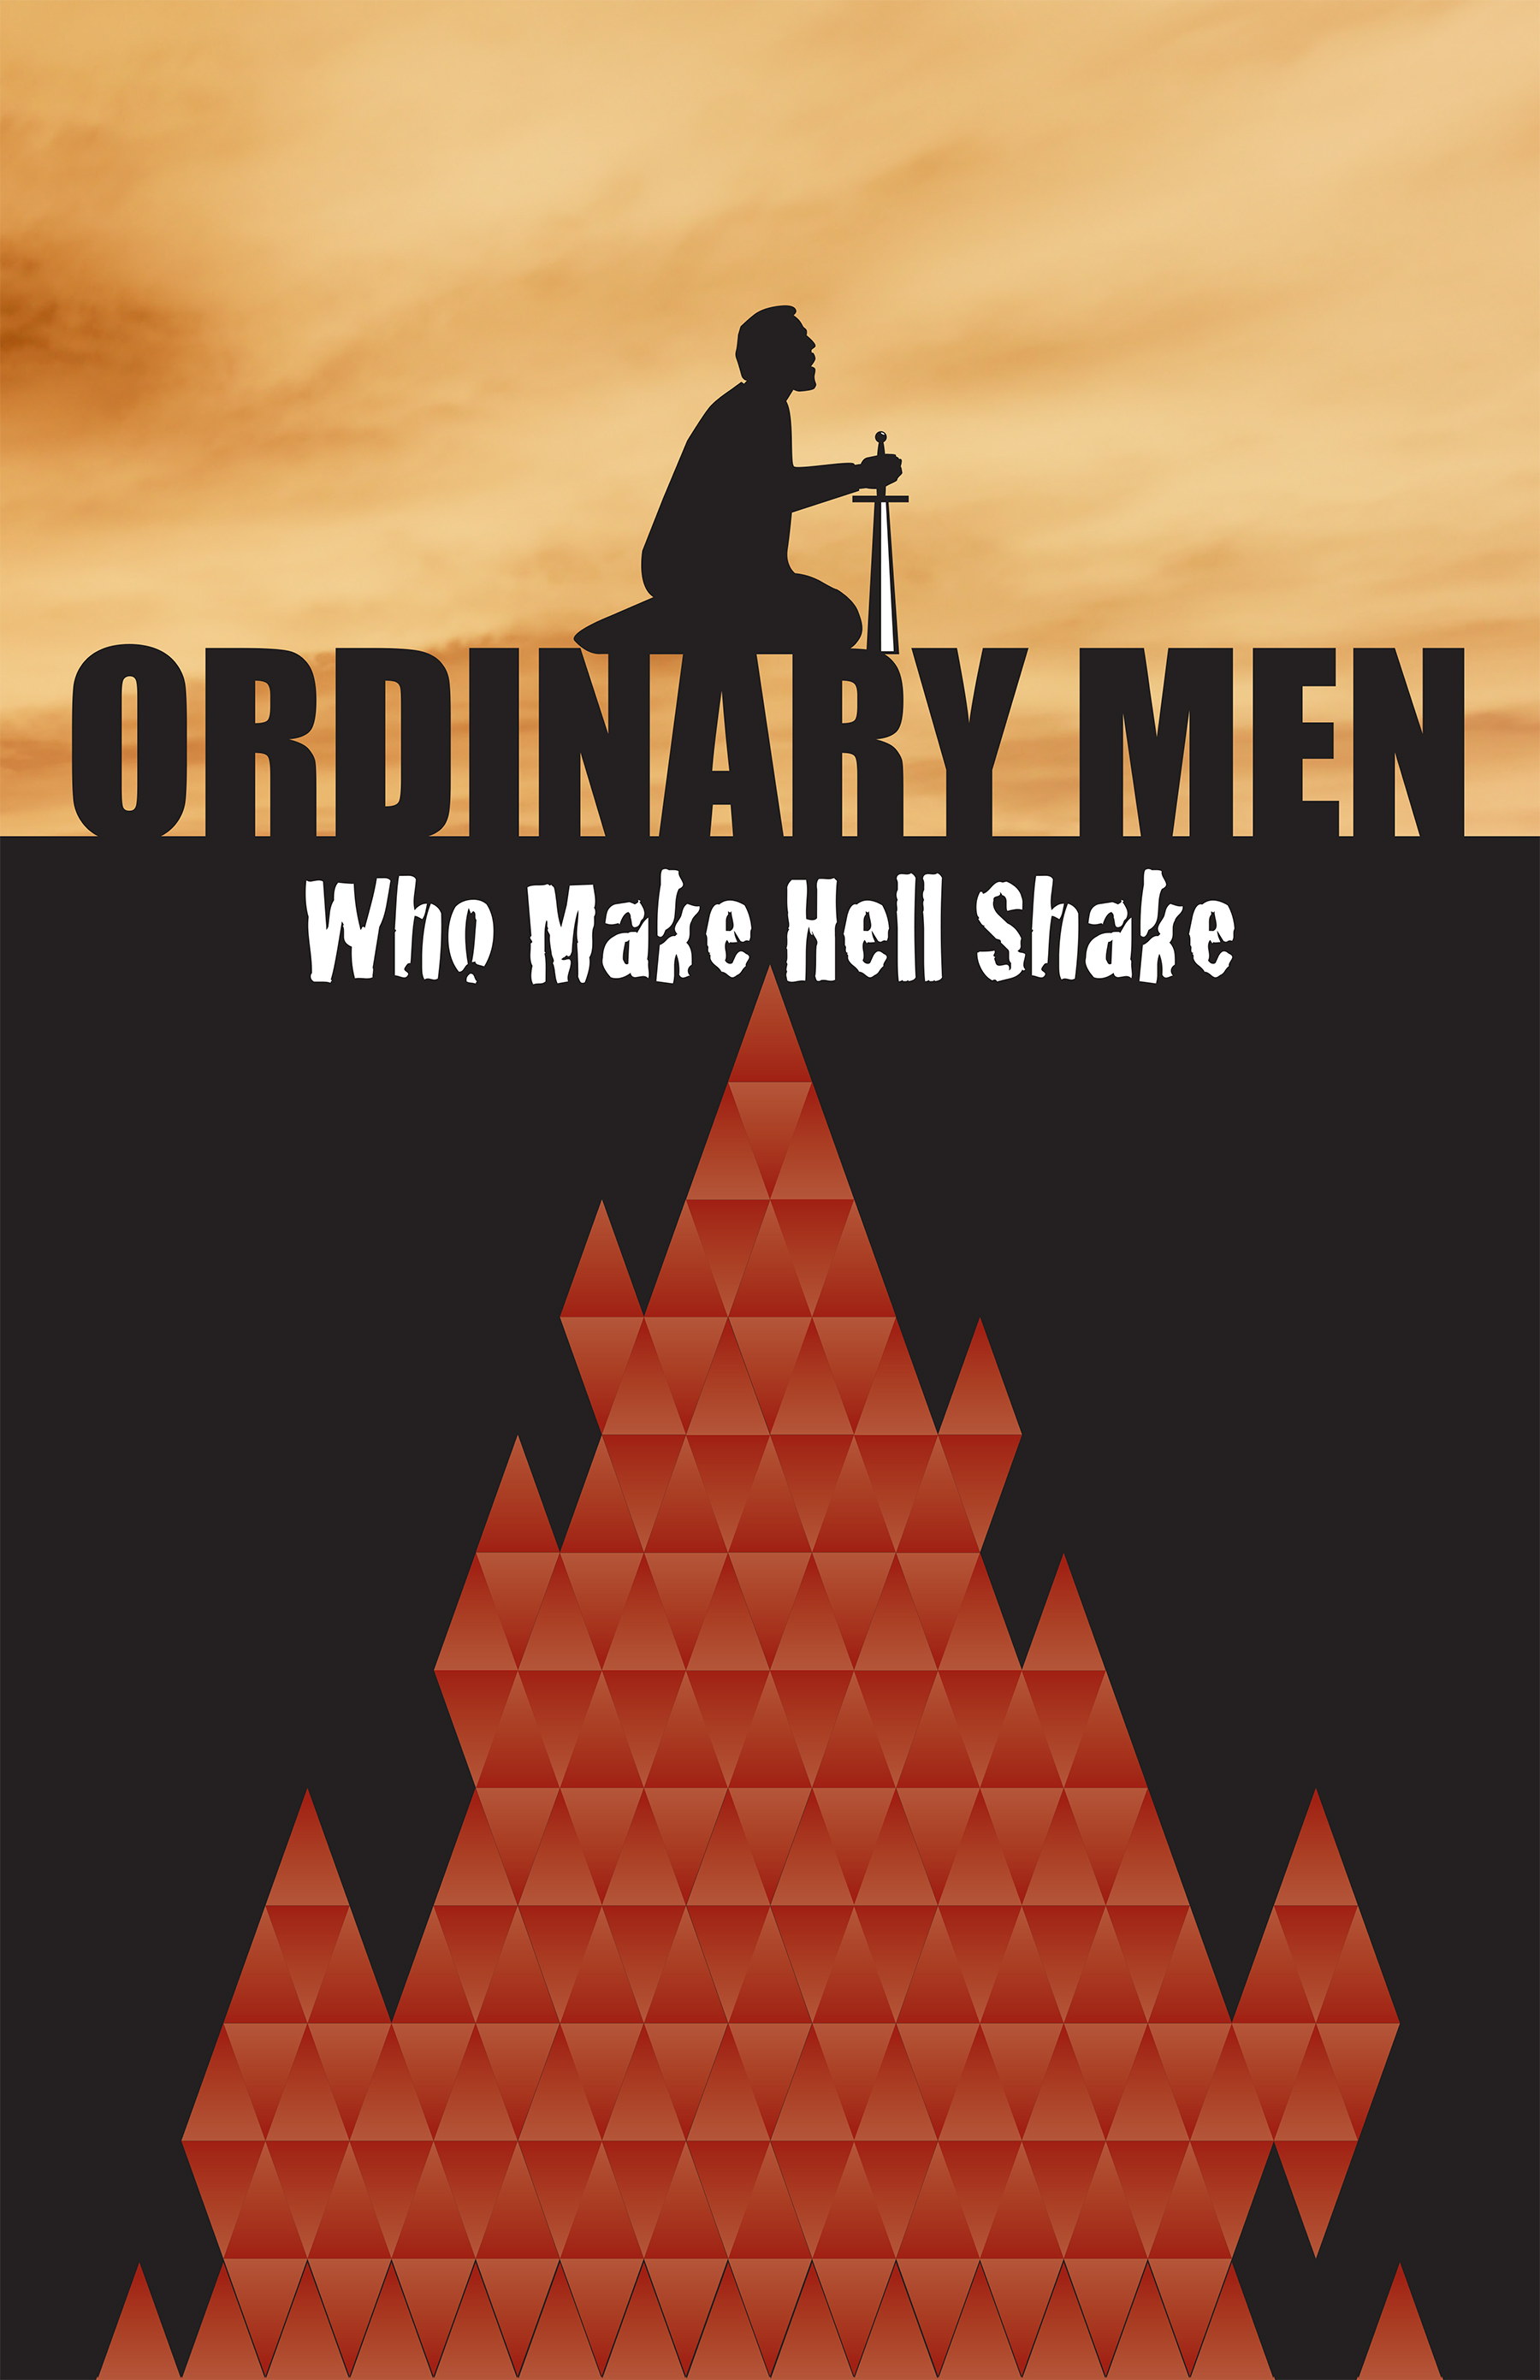 Men's Conference Poster